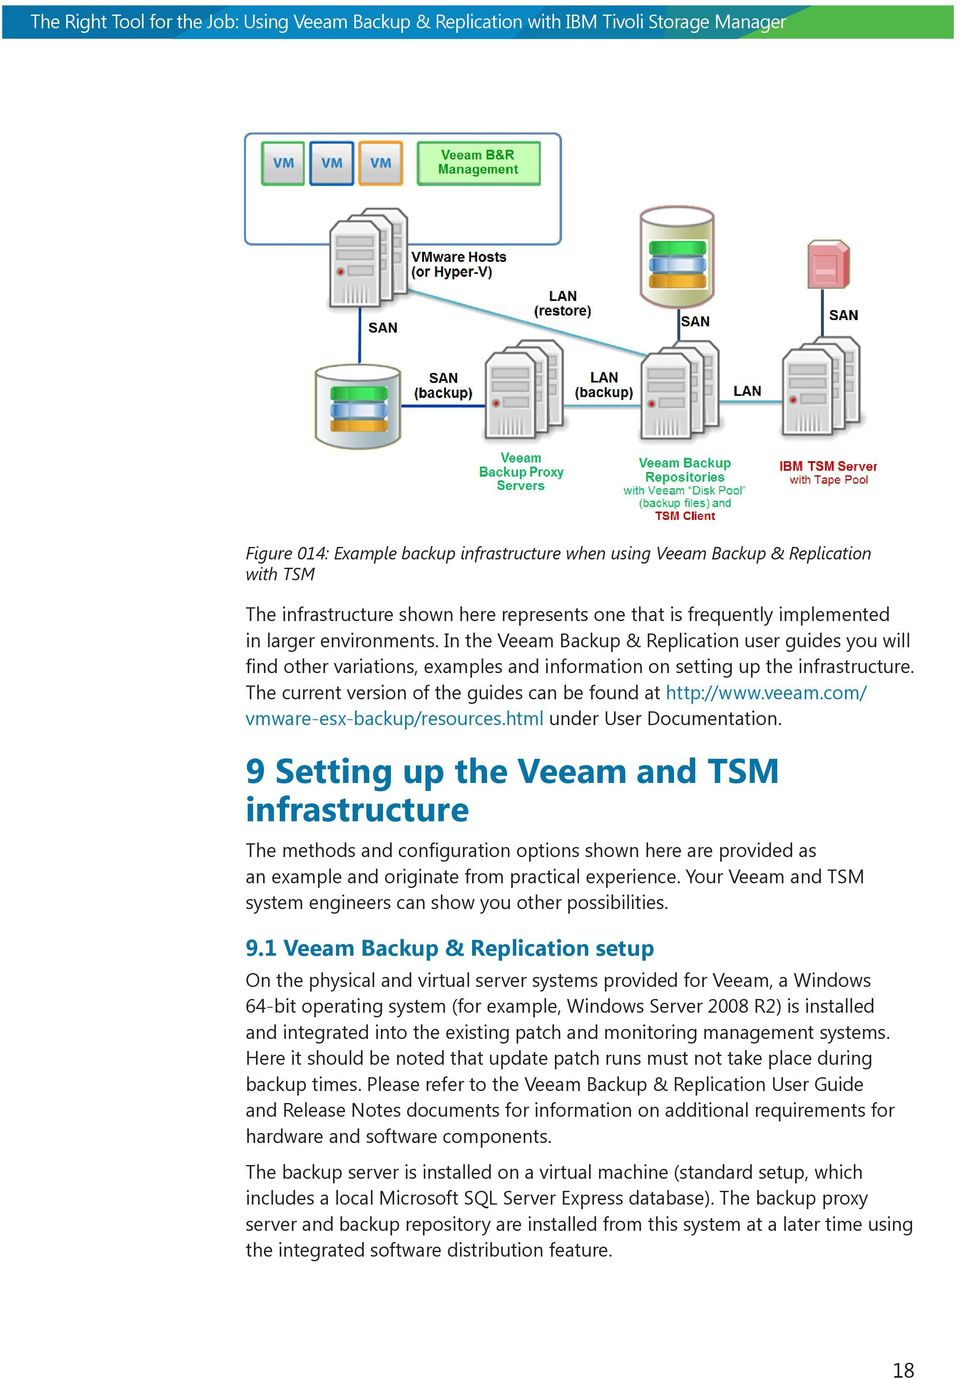 The Right Tool for the Job: Using Veeam Backup & Replication with